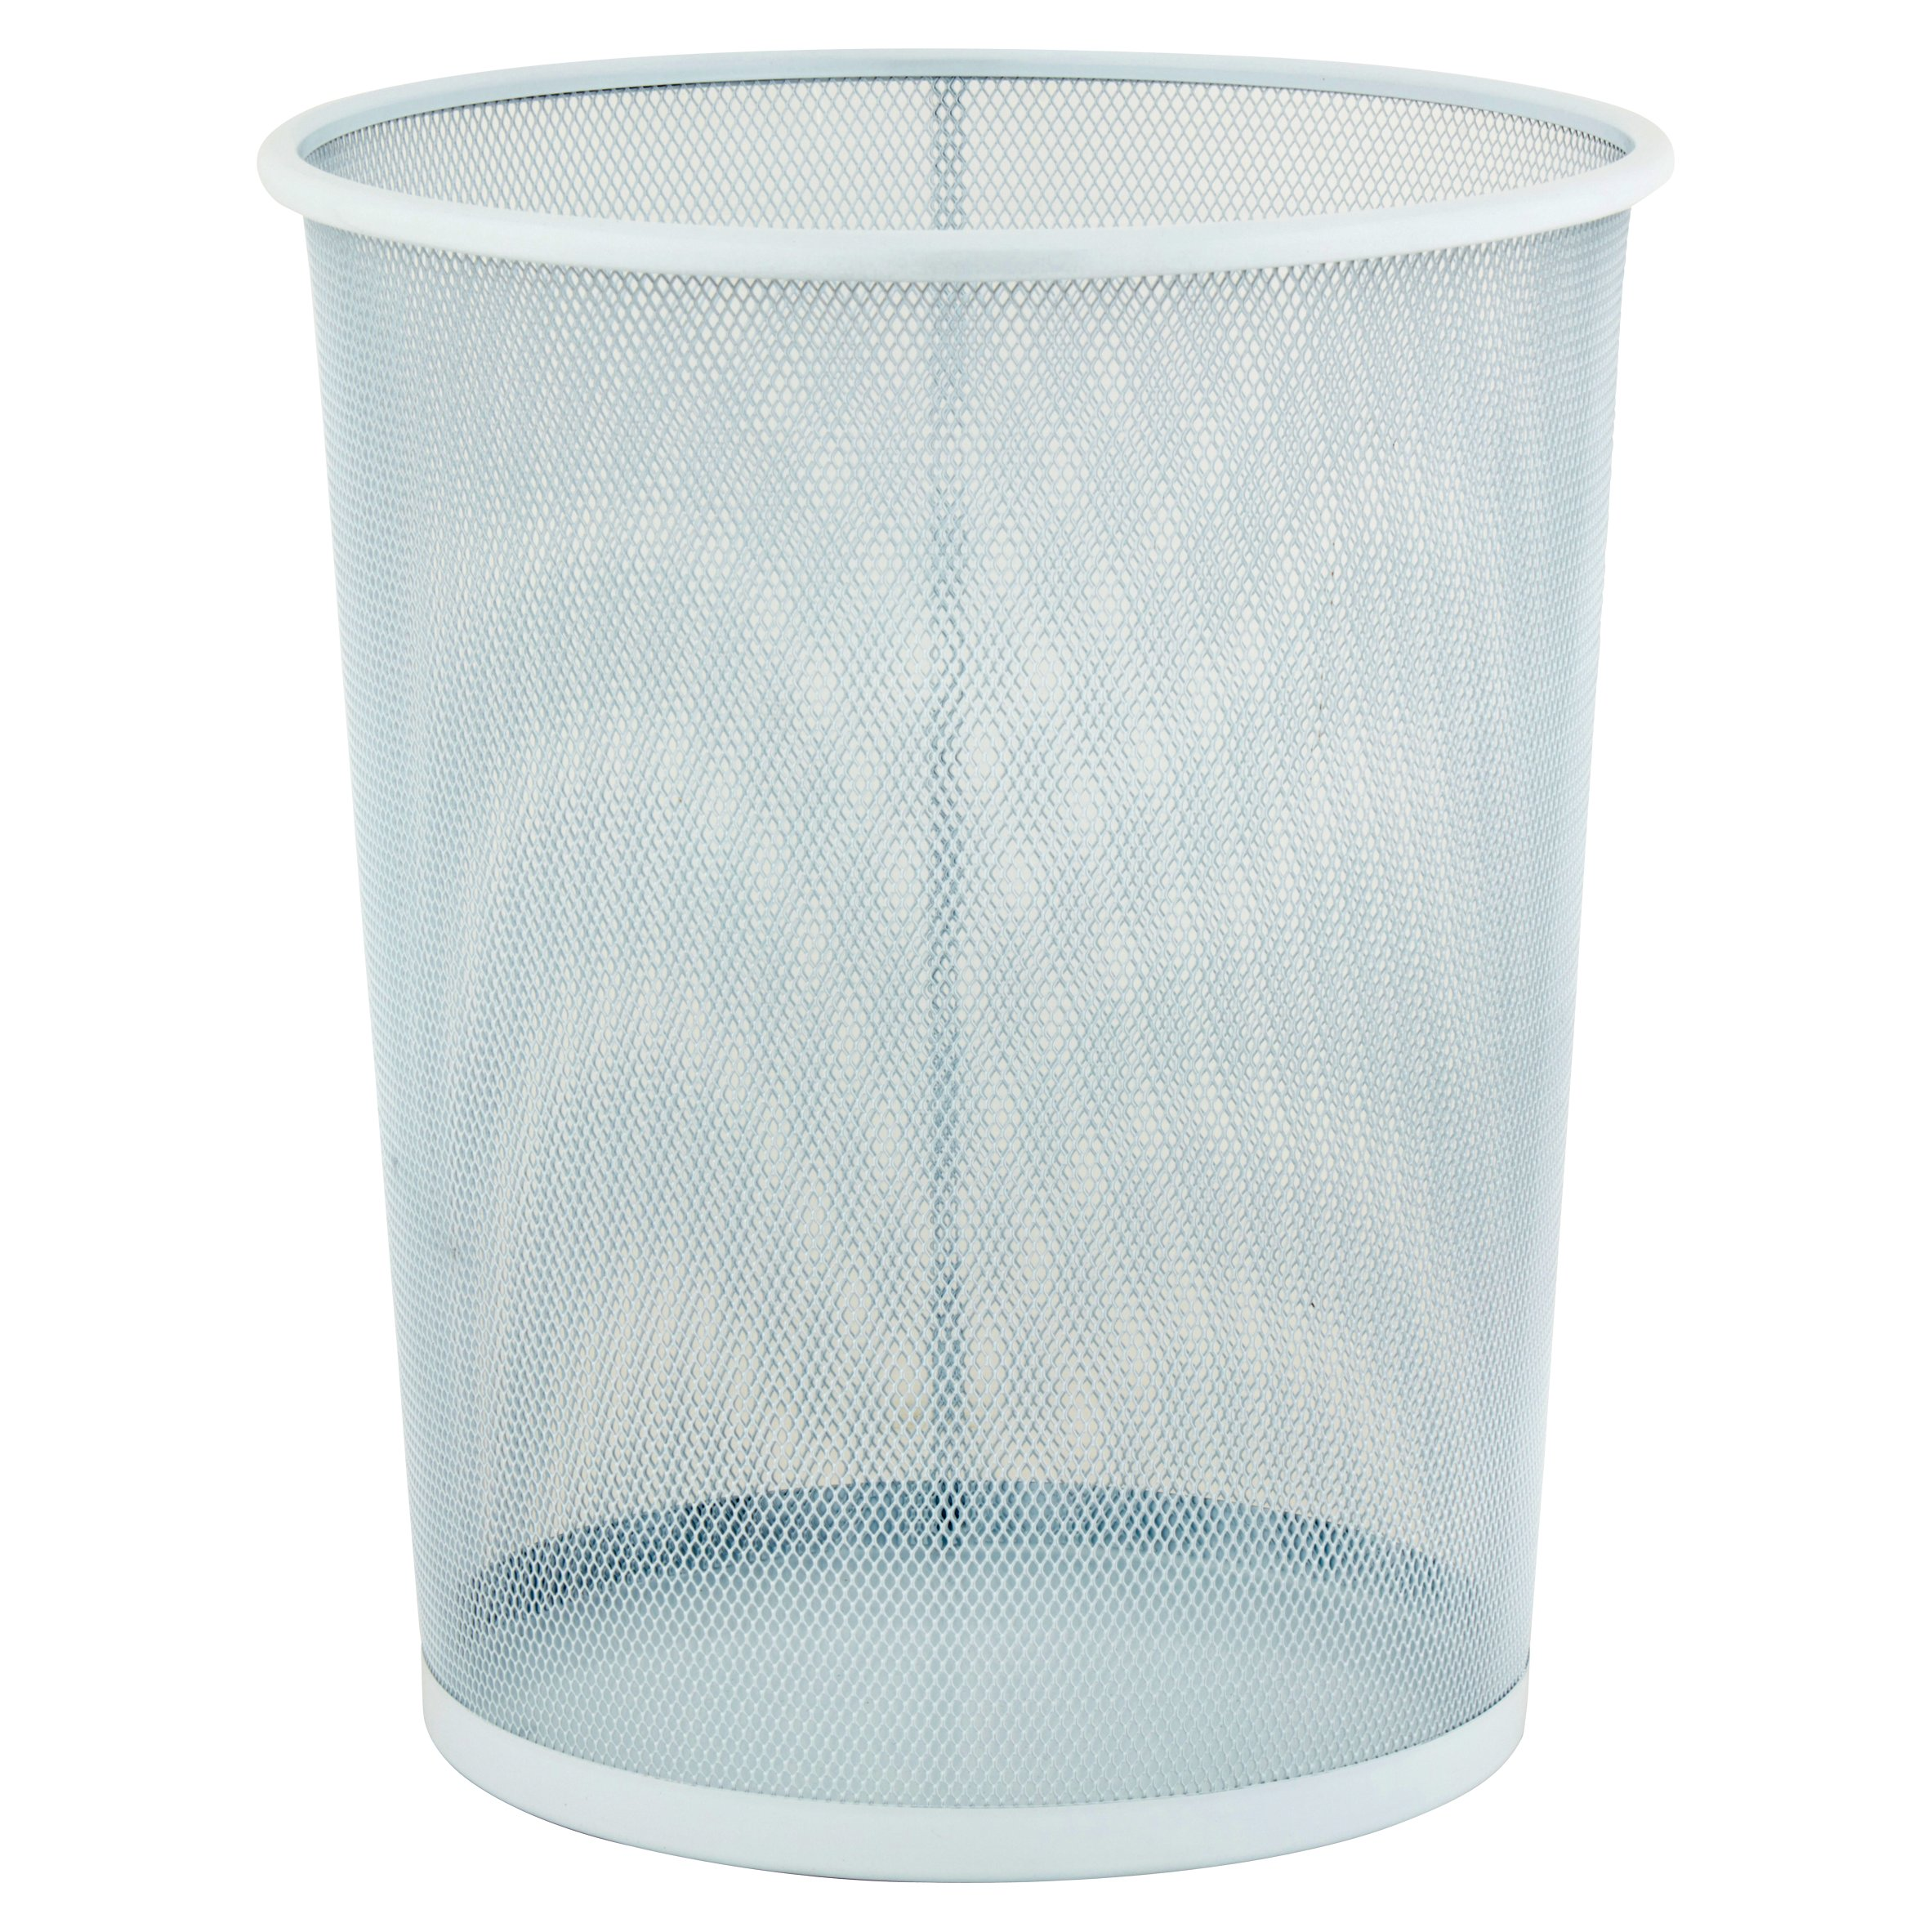 Honey Can Do 4.75-Gallon Round Mesh Metal Trash Basket, Multicolor ...